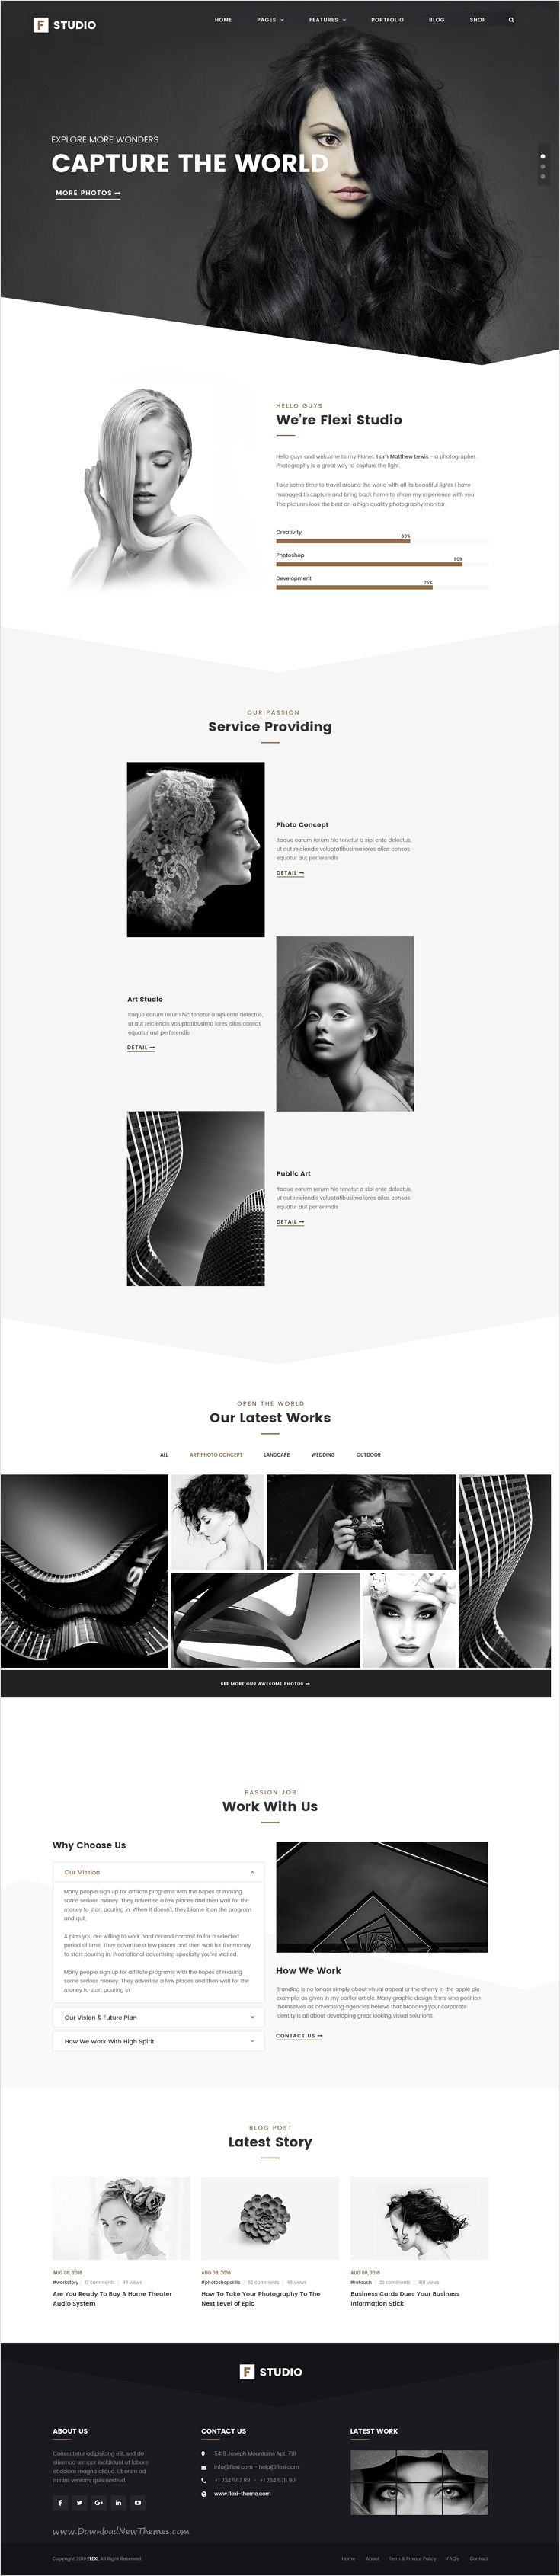 Flexi is a creative & modern design #Photoshop #Theme for multipurpose #photo #studio, Business & Corporate websites with 9 unique homepage layouts download now➩ https://themeforest.net/item/flexi-multipurpose-business-corporate-psd-template/17515715?ref=Datasata